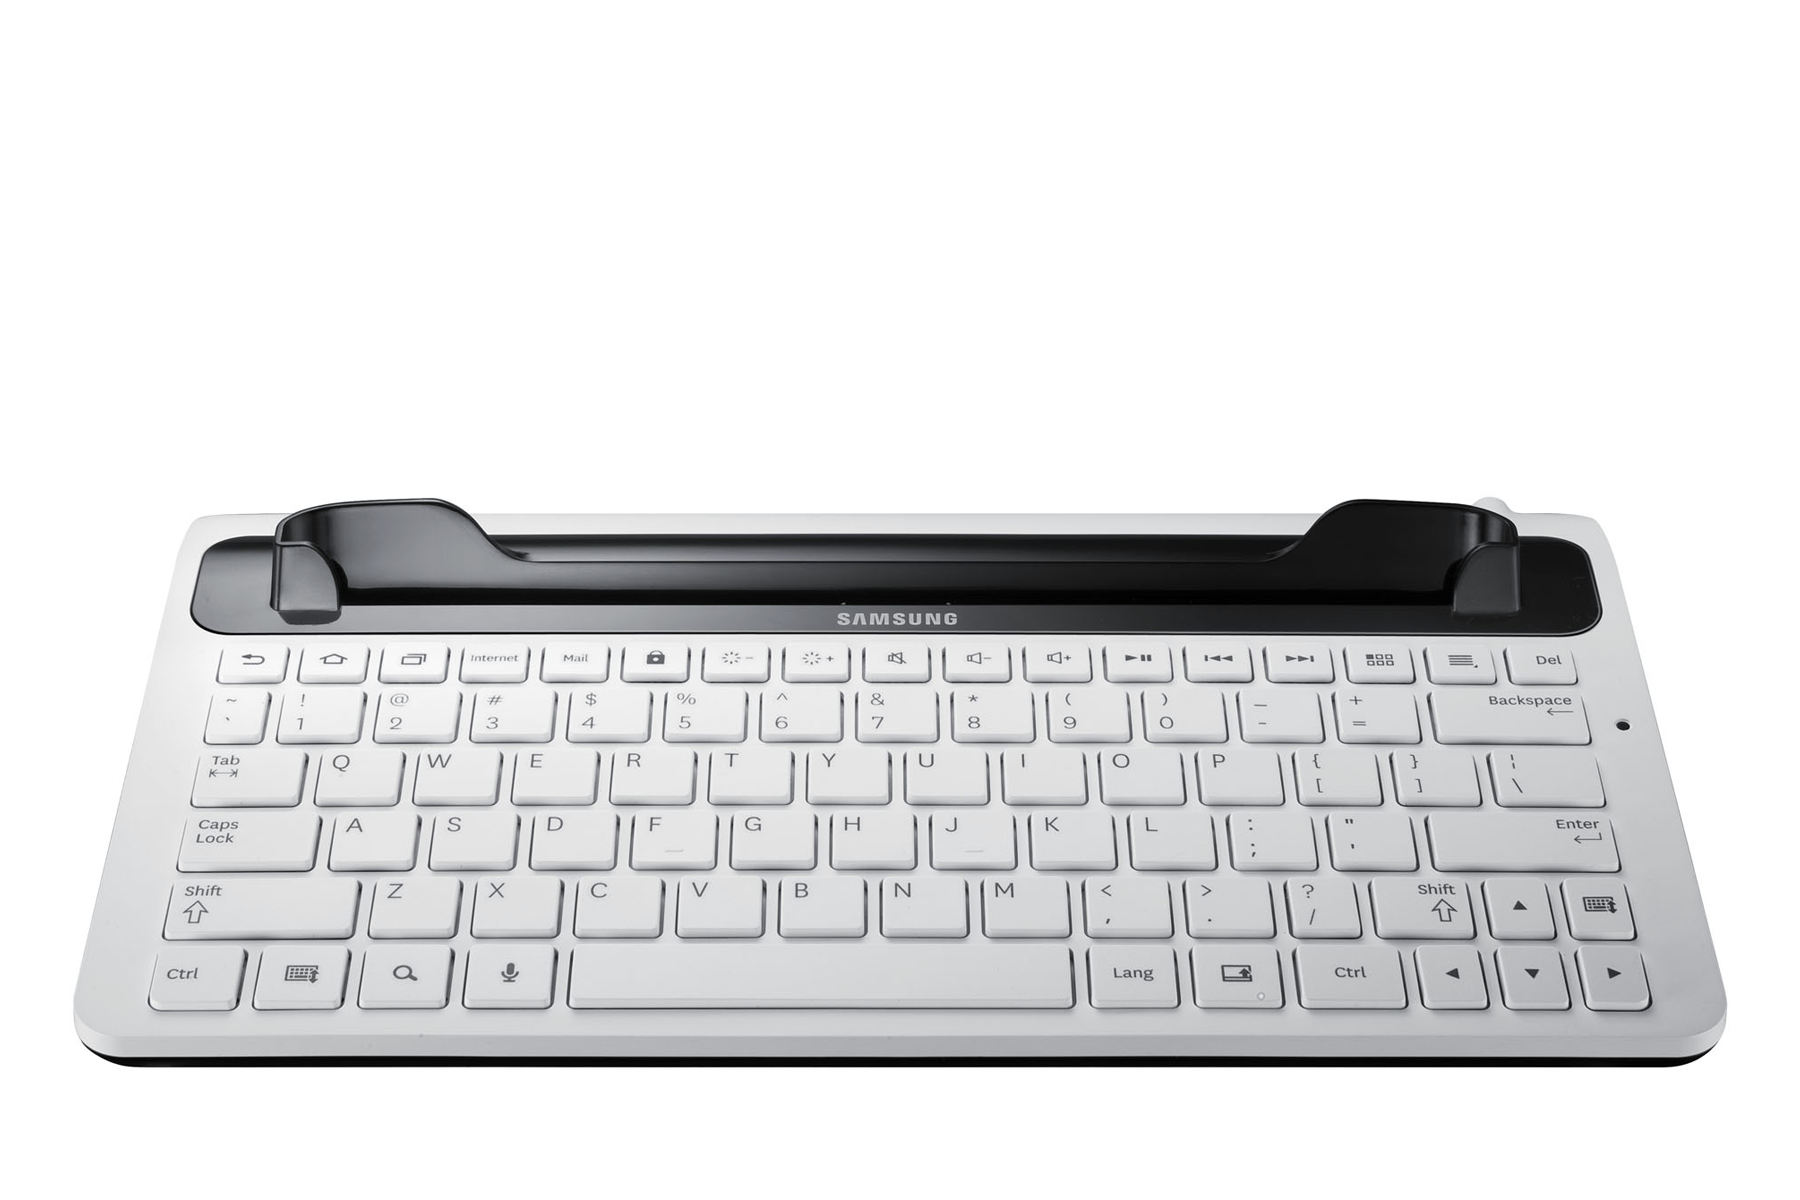 Keyboard Dock(Galaxy Tab 8.9)